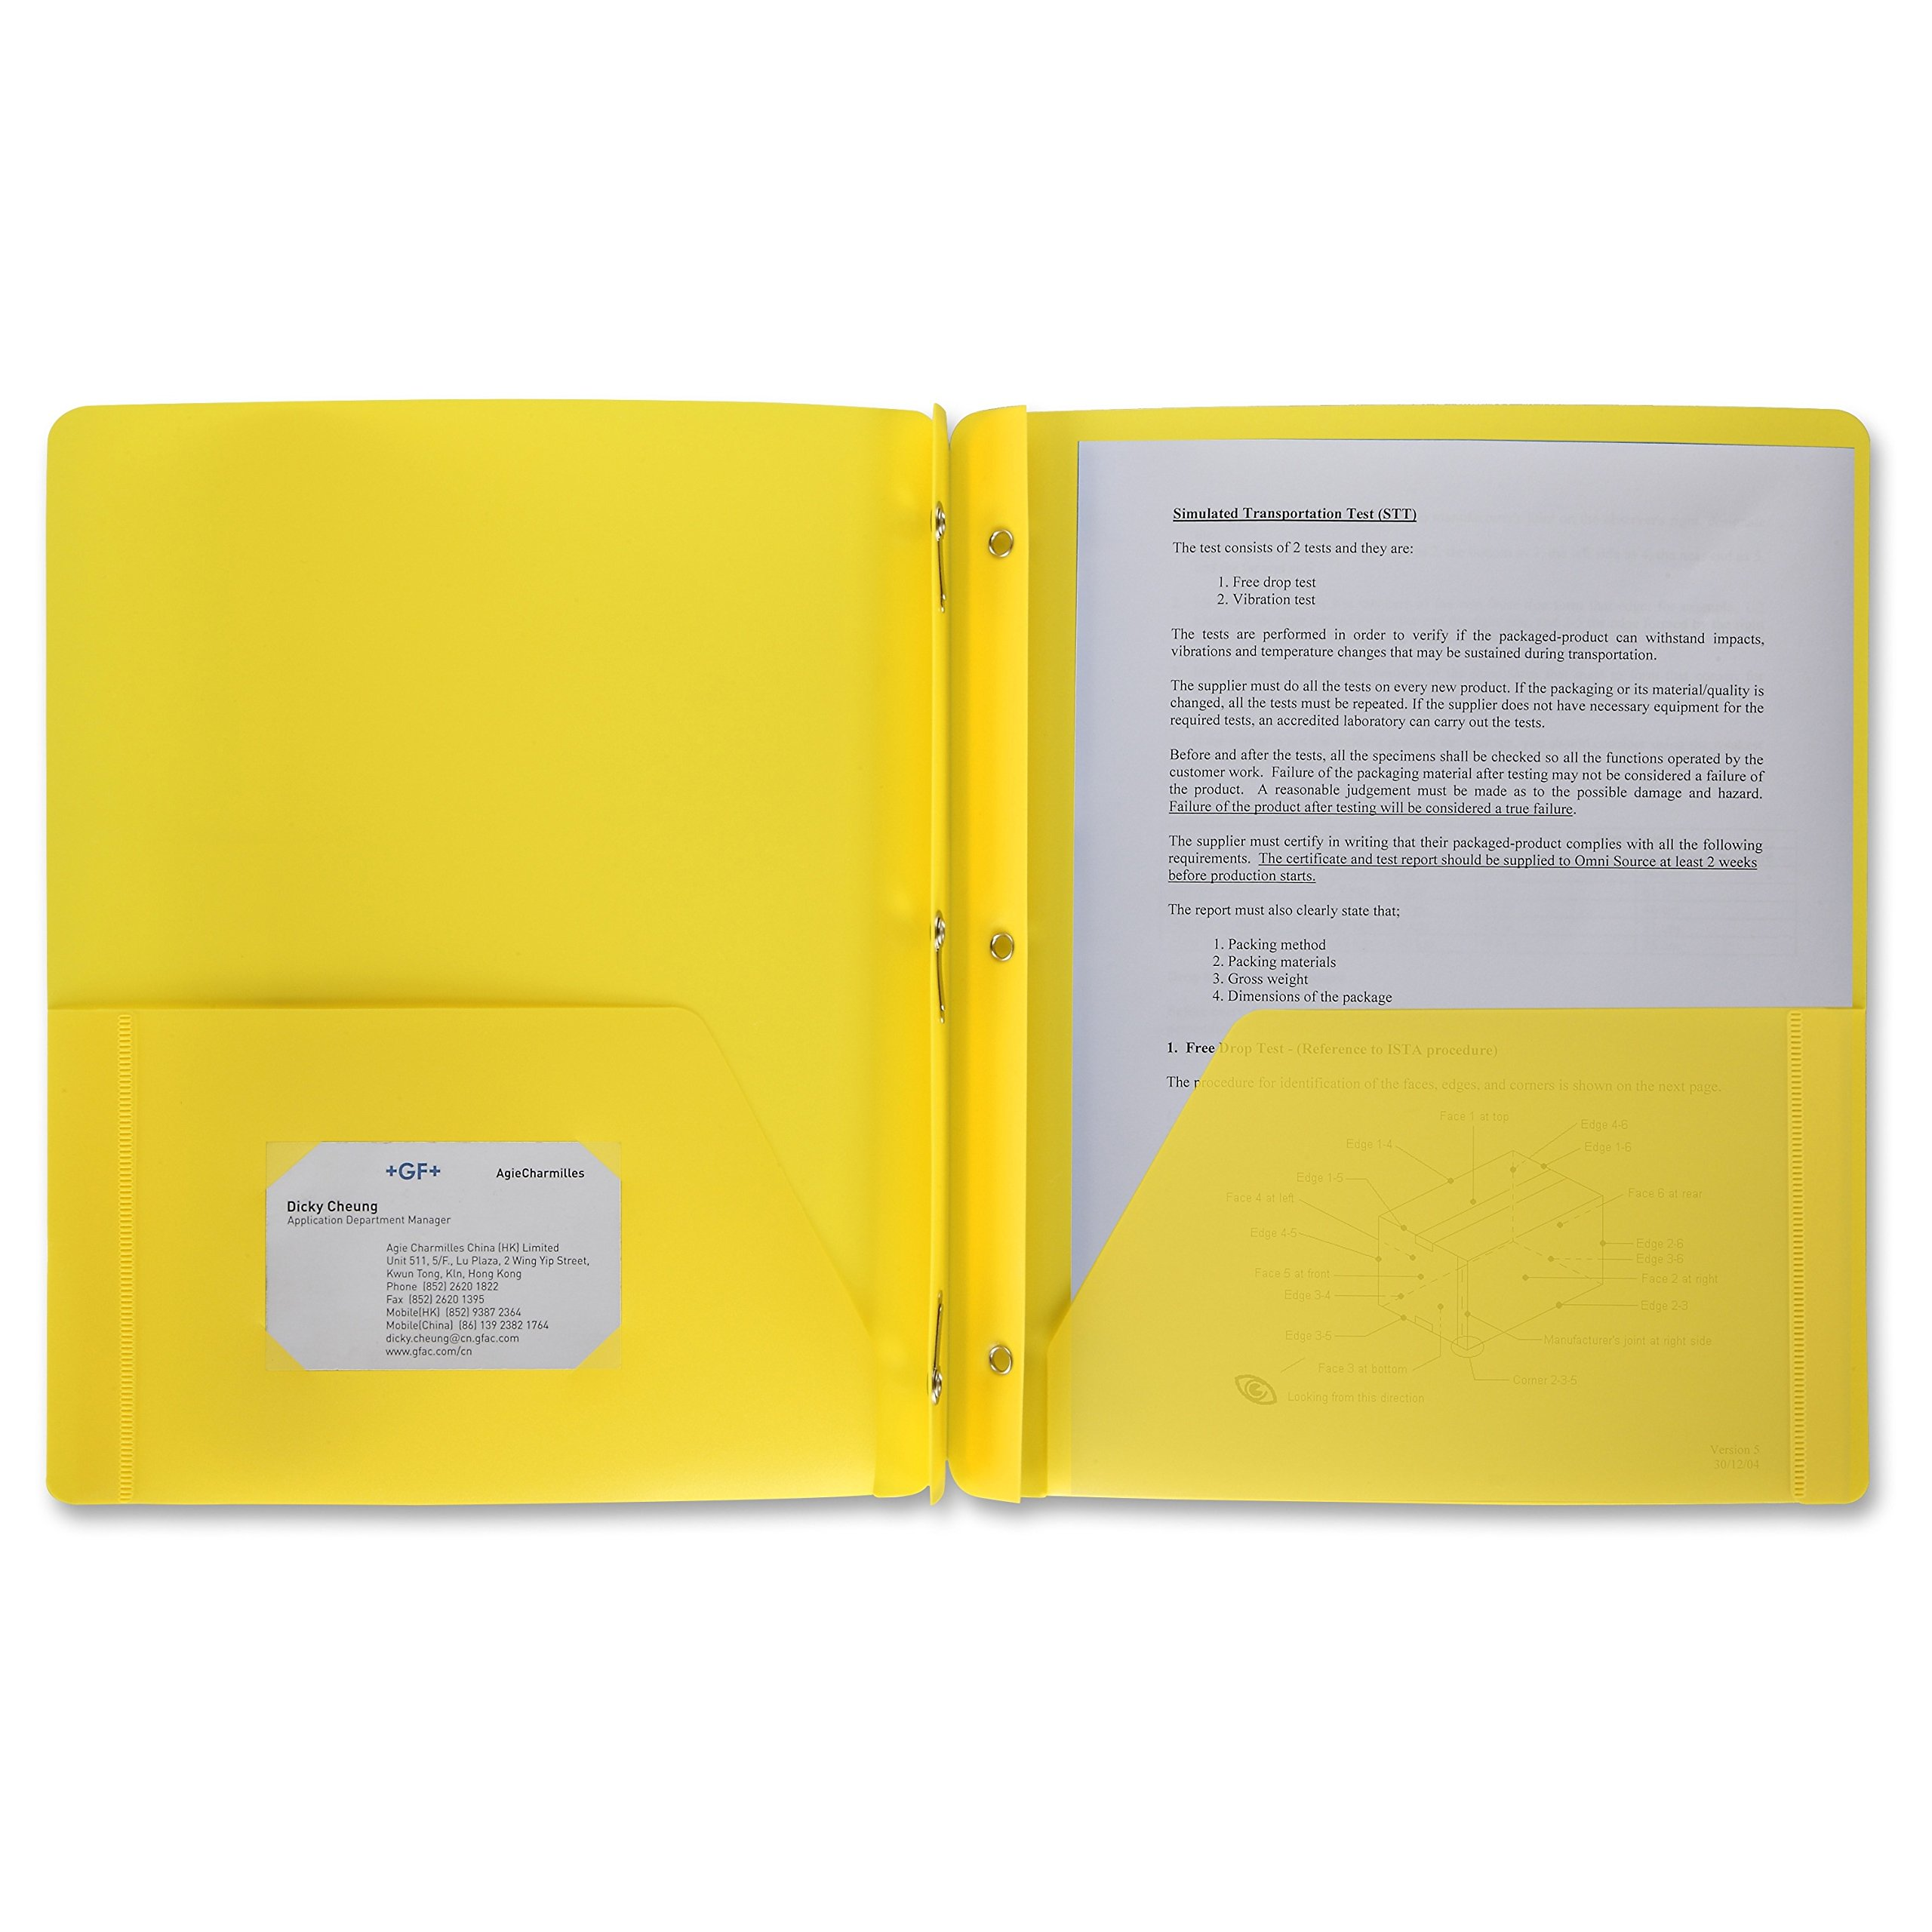 48 PackPoly Plastic Portfolio School Report Covers, 3 Hole Punched with Prongs, 8.5 x 11, Solid Colors, Durable, Spill Resistant/Water Resistant (Yellow)